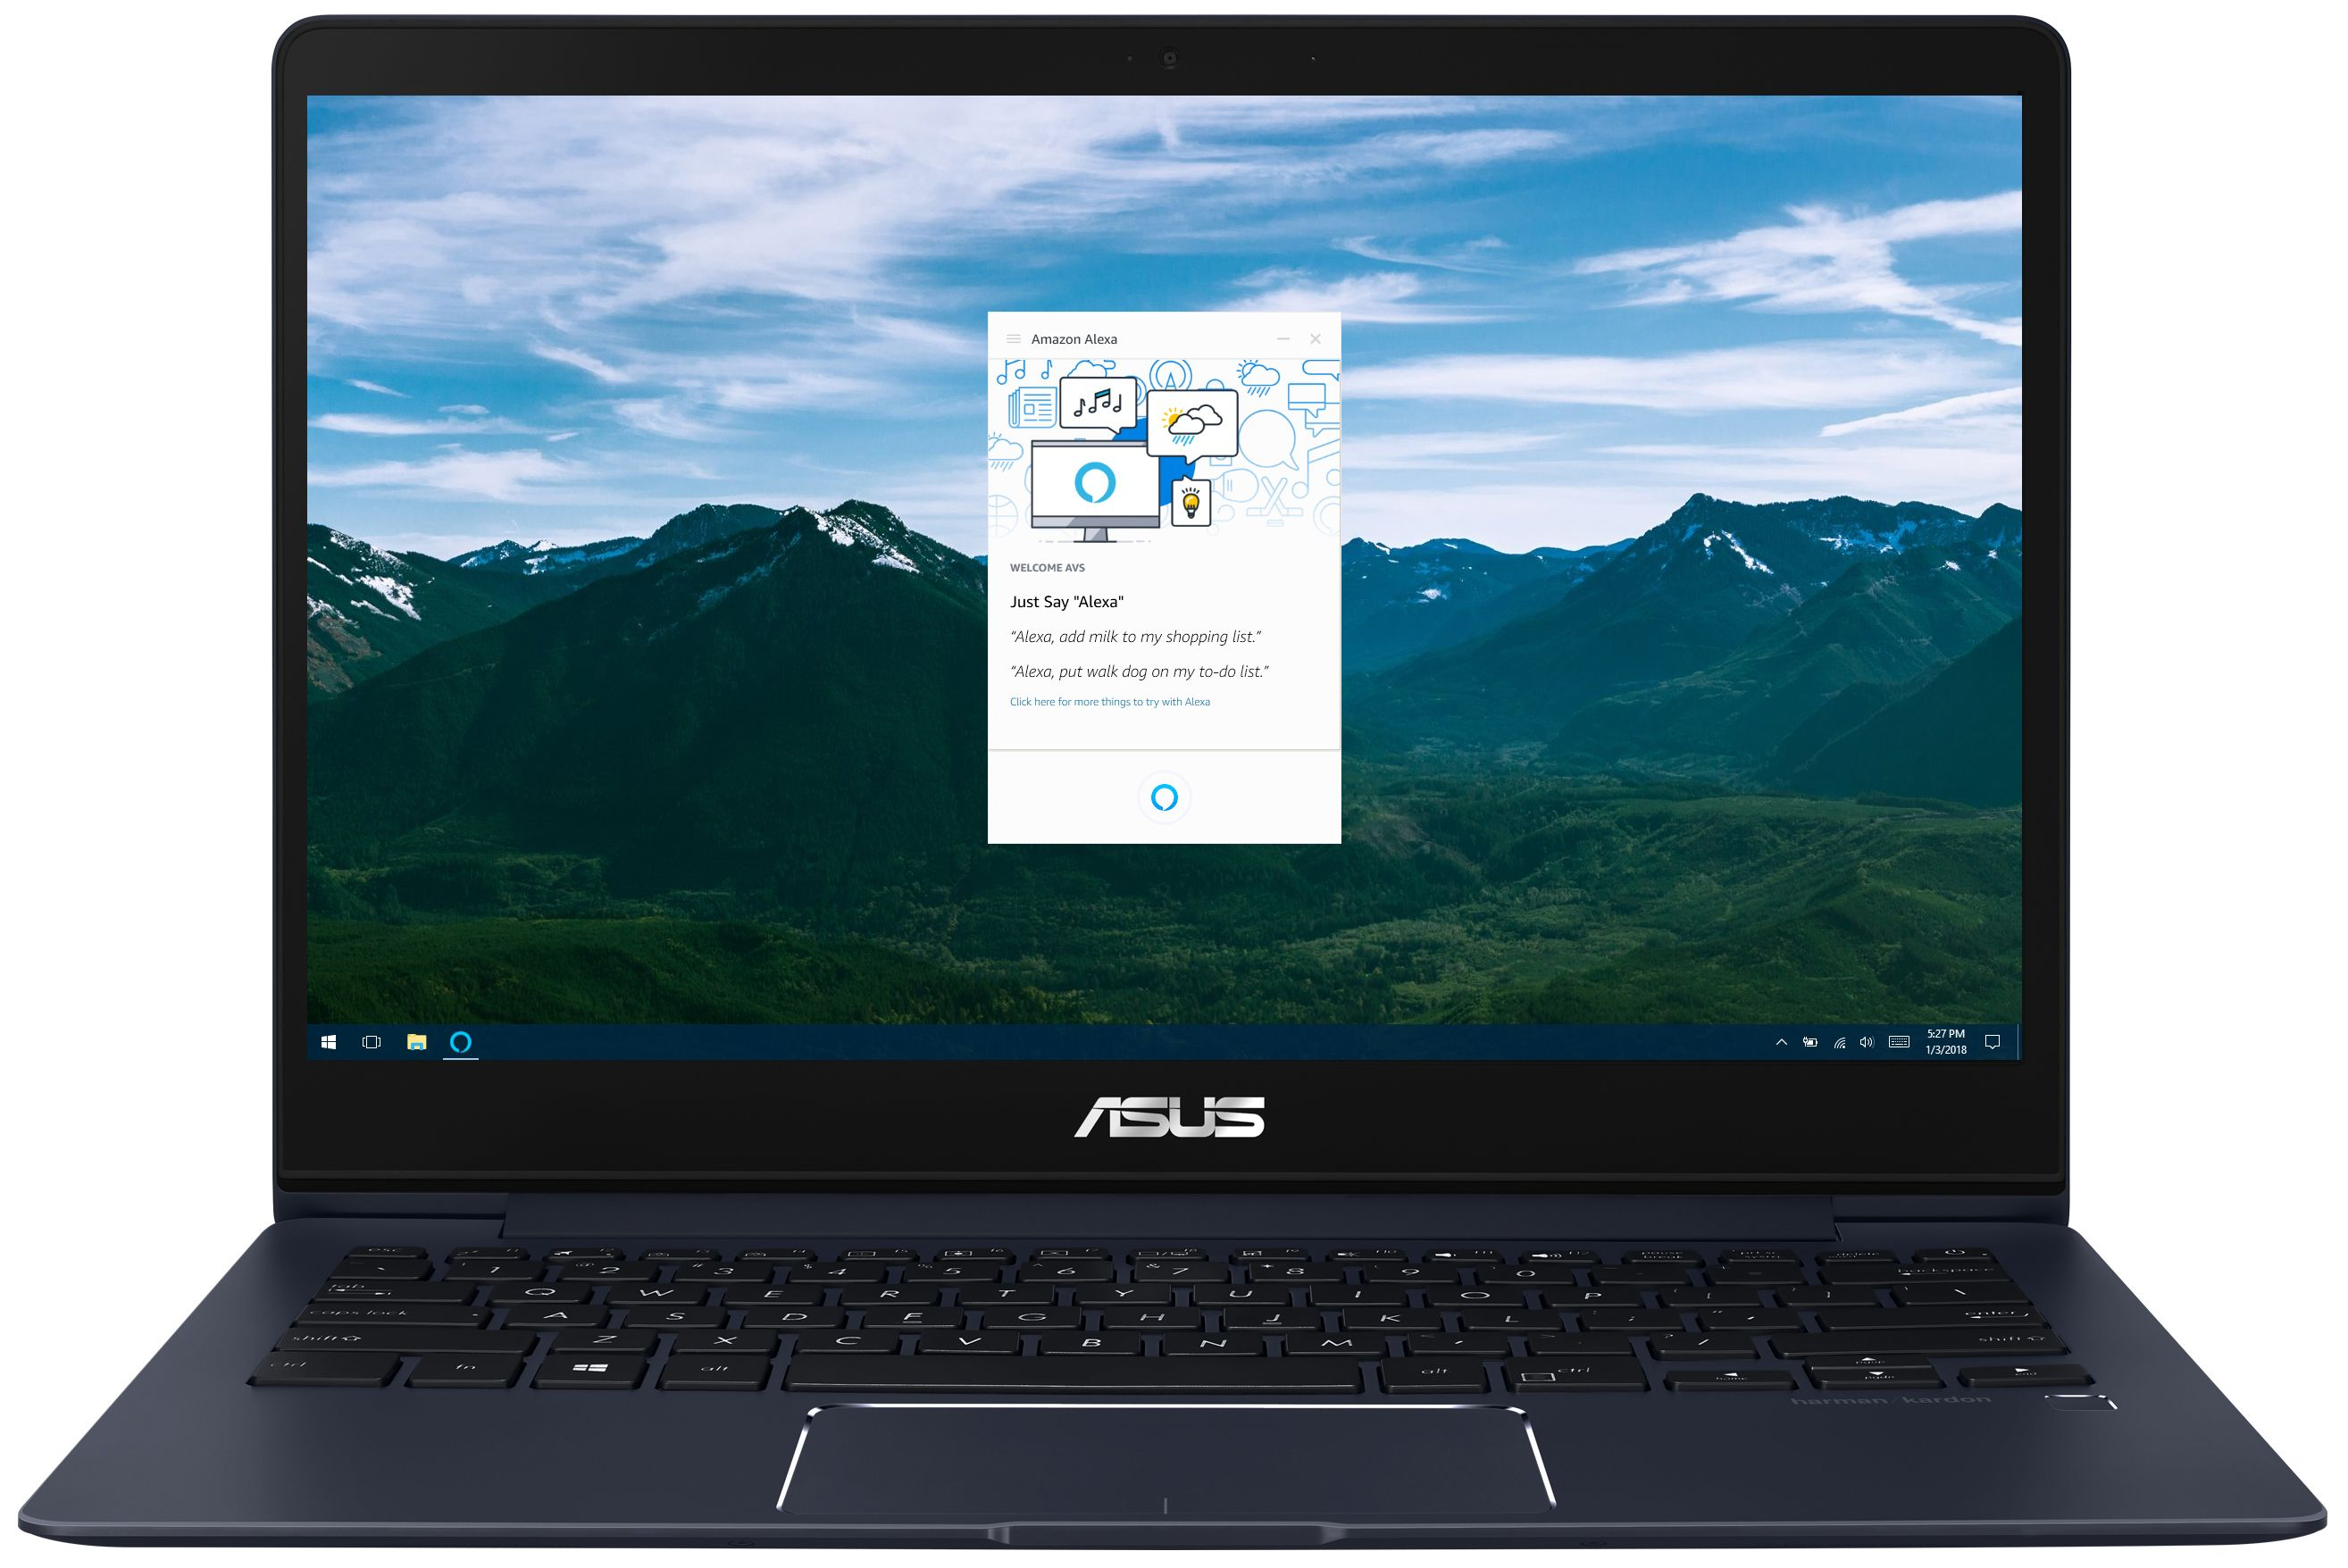 Amazon Alexa Coming To Future ASUS Laptops CES 2018